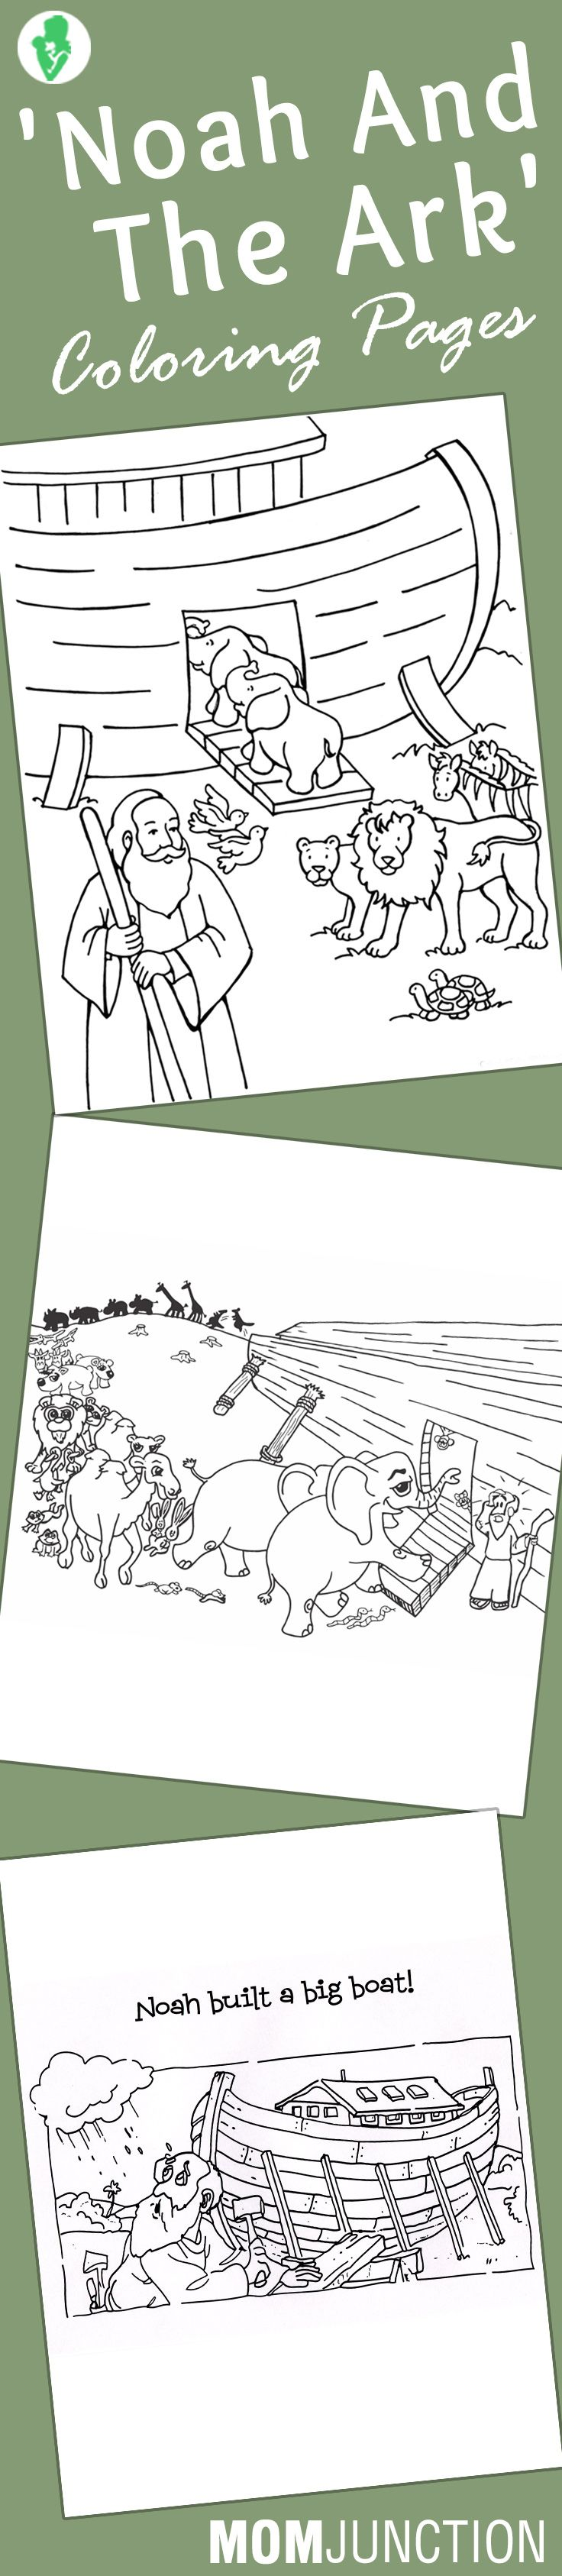 Top 10 \'Noah And The Ark\' Coloring Pages Your Toddler Will Love To ...